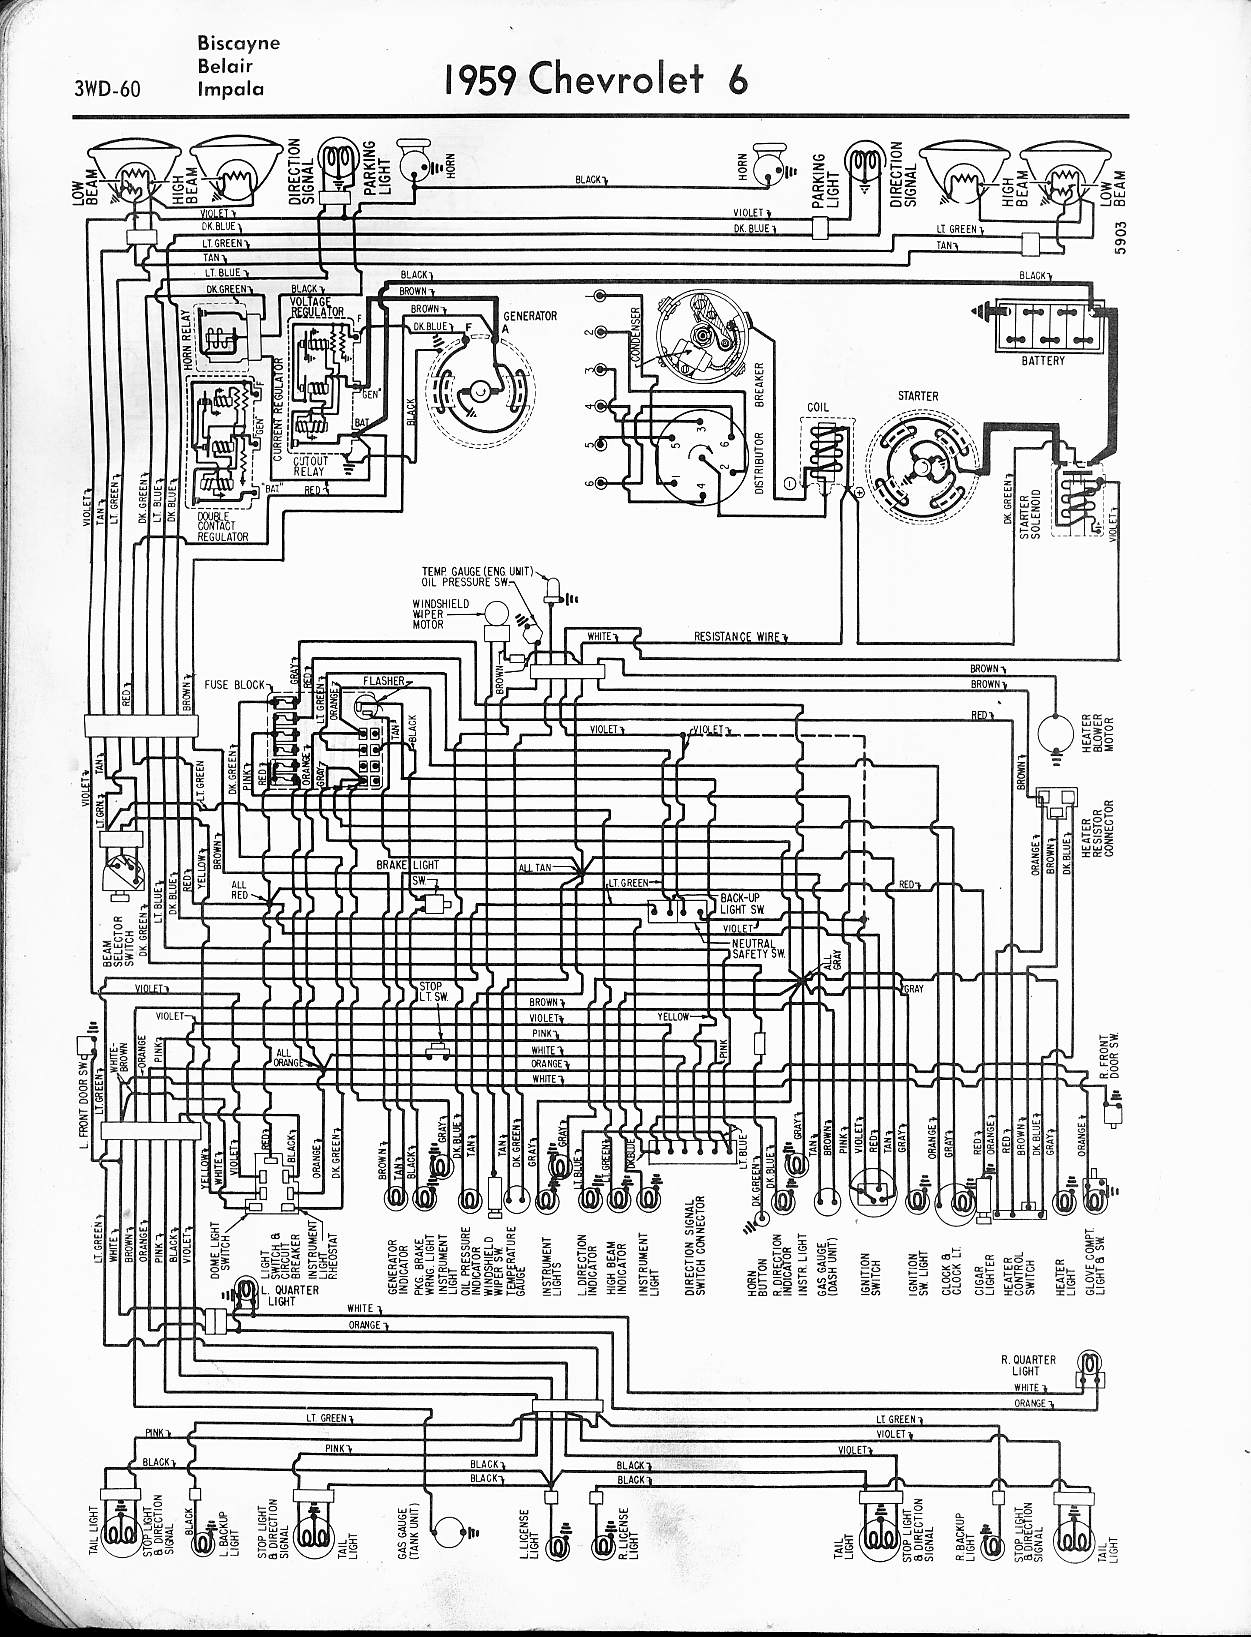 1959 Impala Wiring Diagram Diy Enthusiasts Diagrams 1962 Chevrolet 57 65 Chevy Rh Oldcarmanualproject Com 1967 Camaro